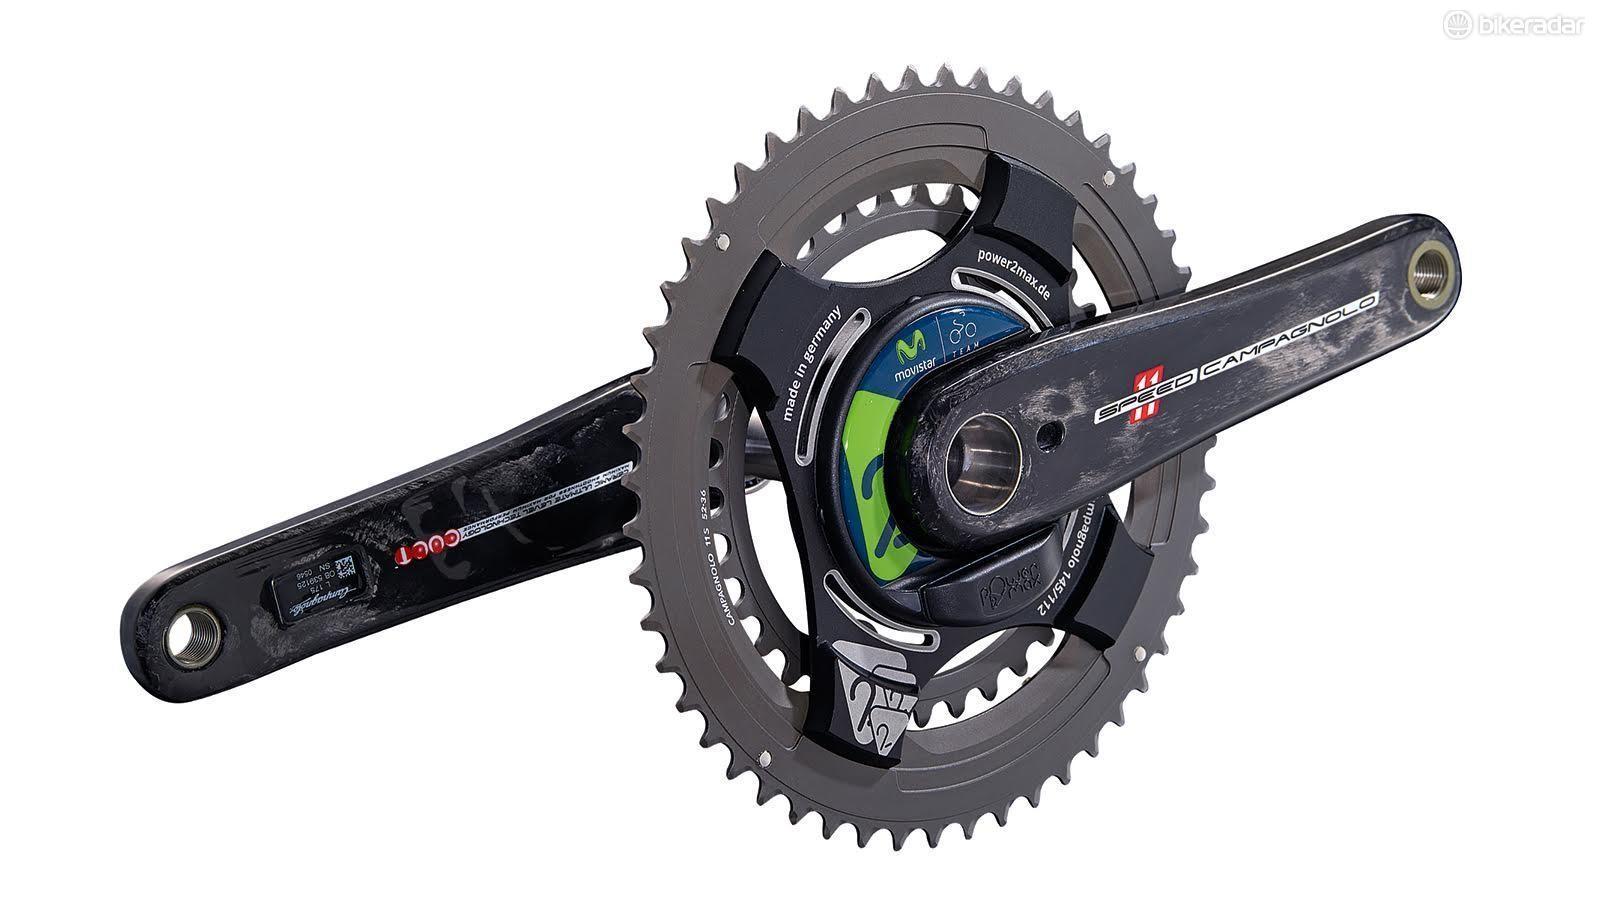 power2max's Type-S includes Campagnolo options